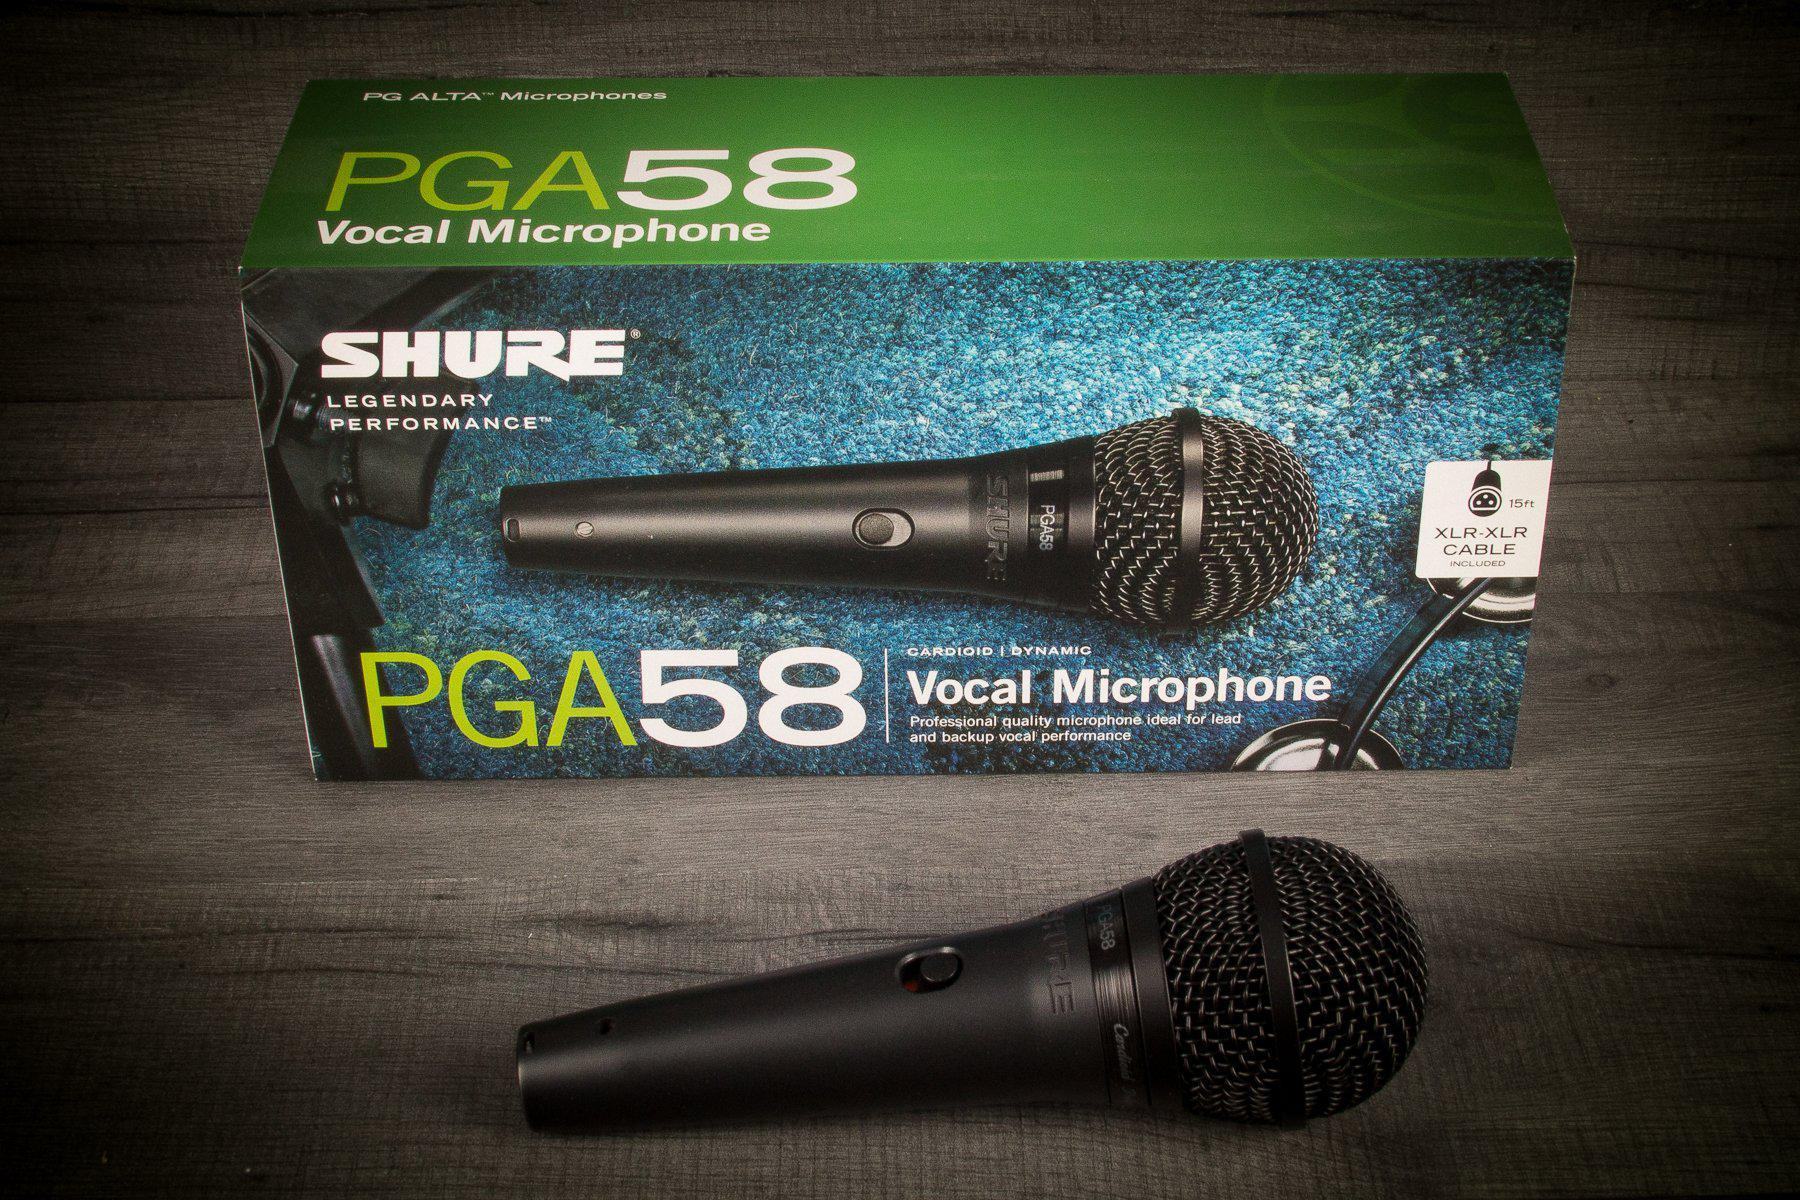 Pga58 Cardioid Dynamic Vocal Microphone - MusicStreet